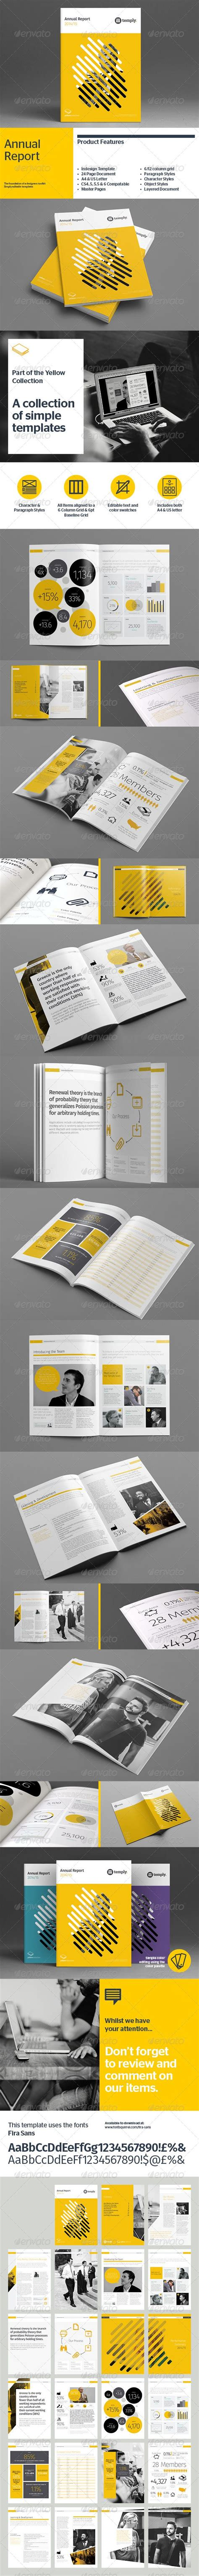 e brochure design templates annual report template 레이아웃 잡지 레이아웃 및 팸플릿